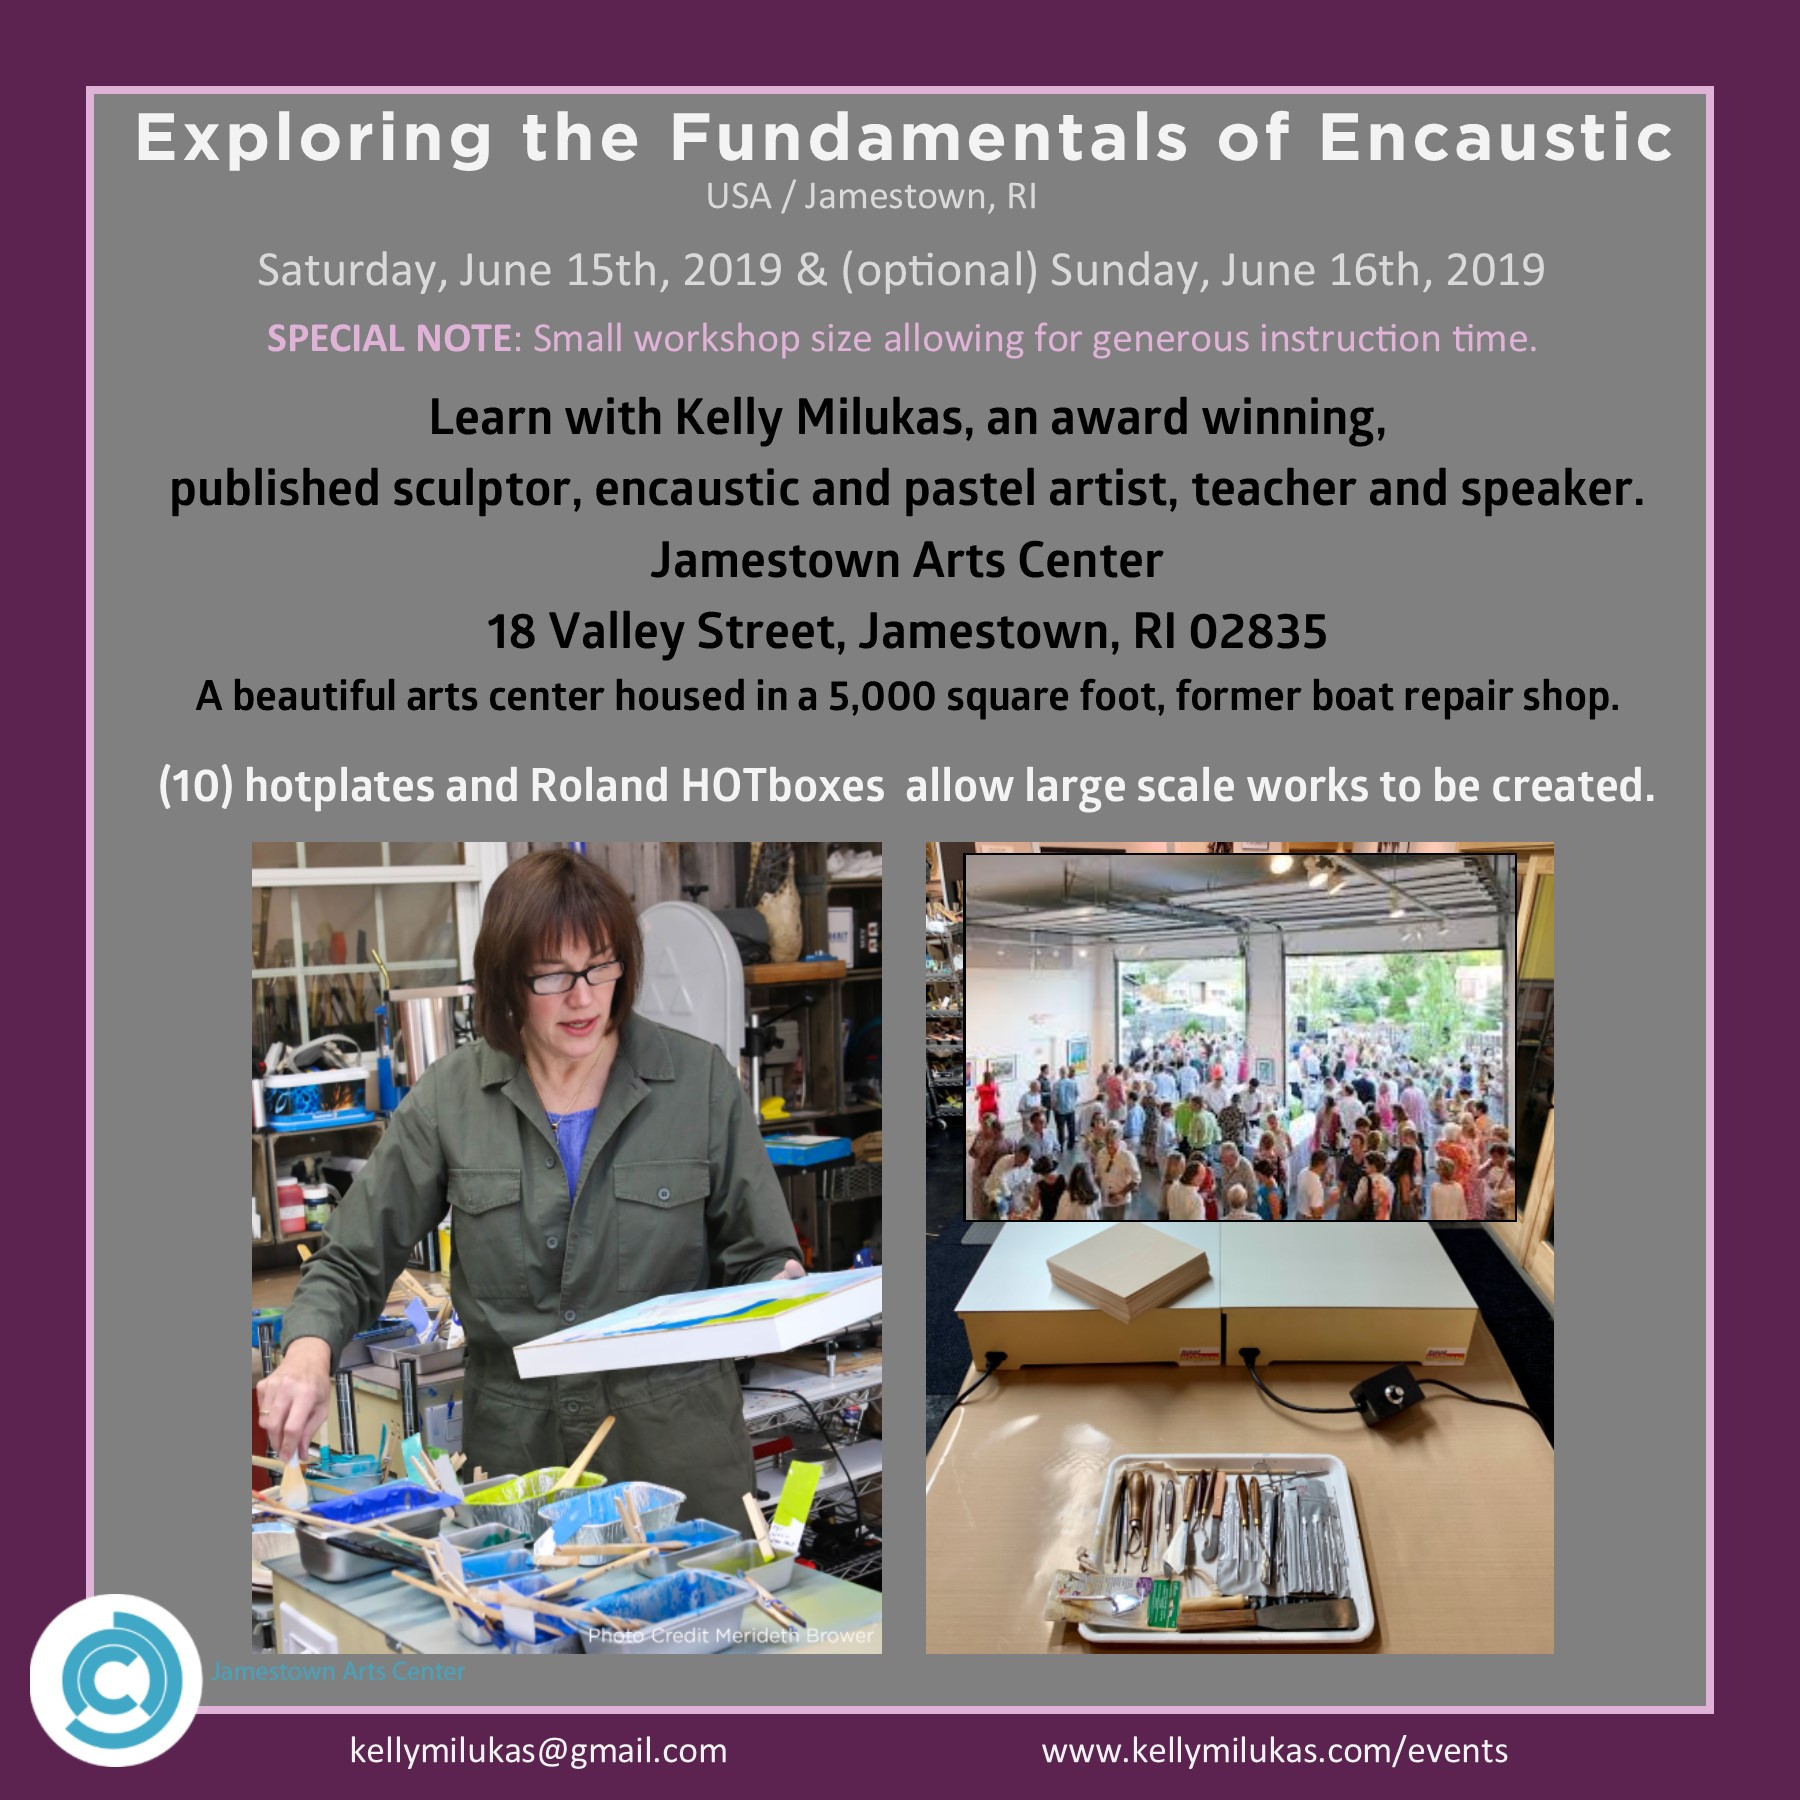 Fundamentals of Encaustic Painting with Kelly Milukas